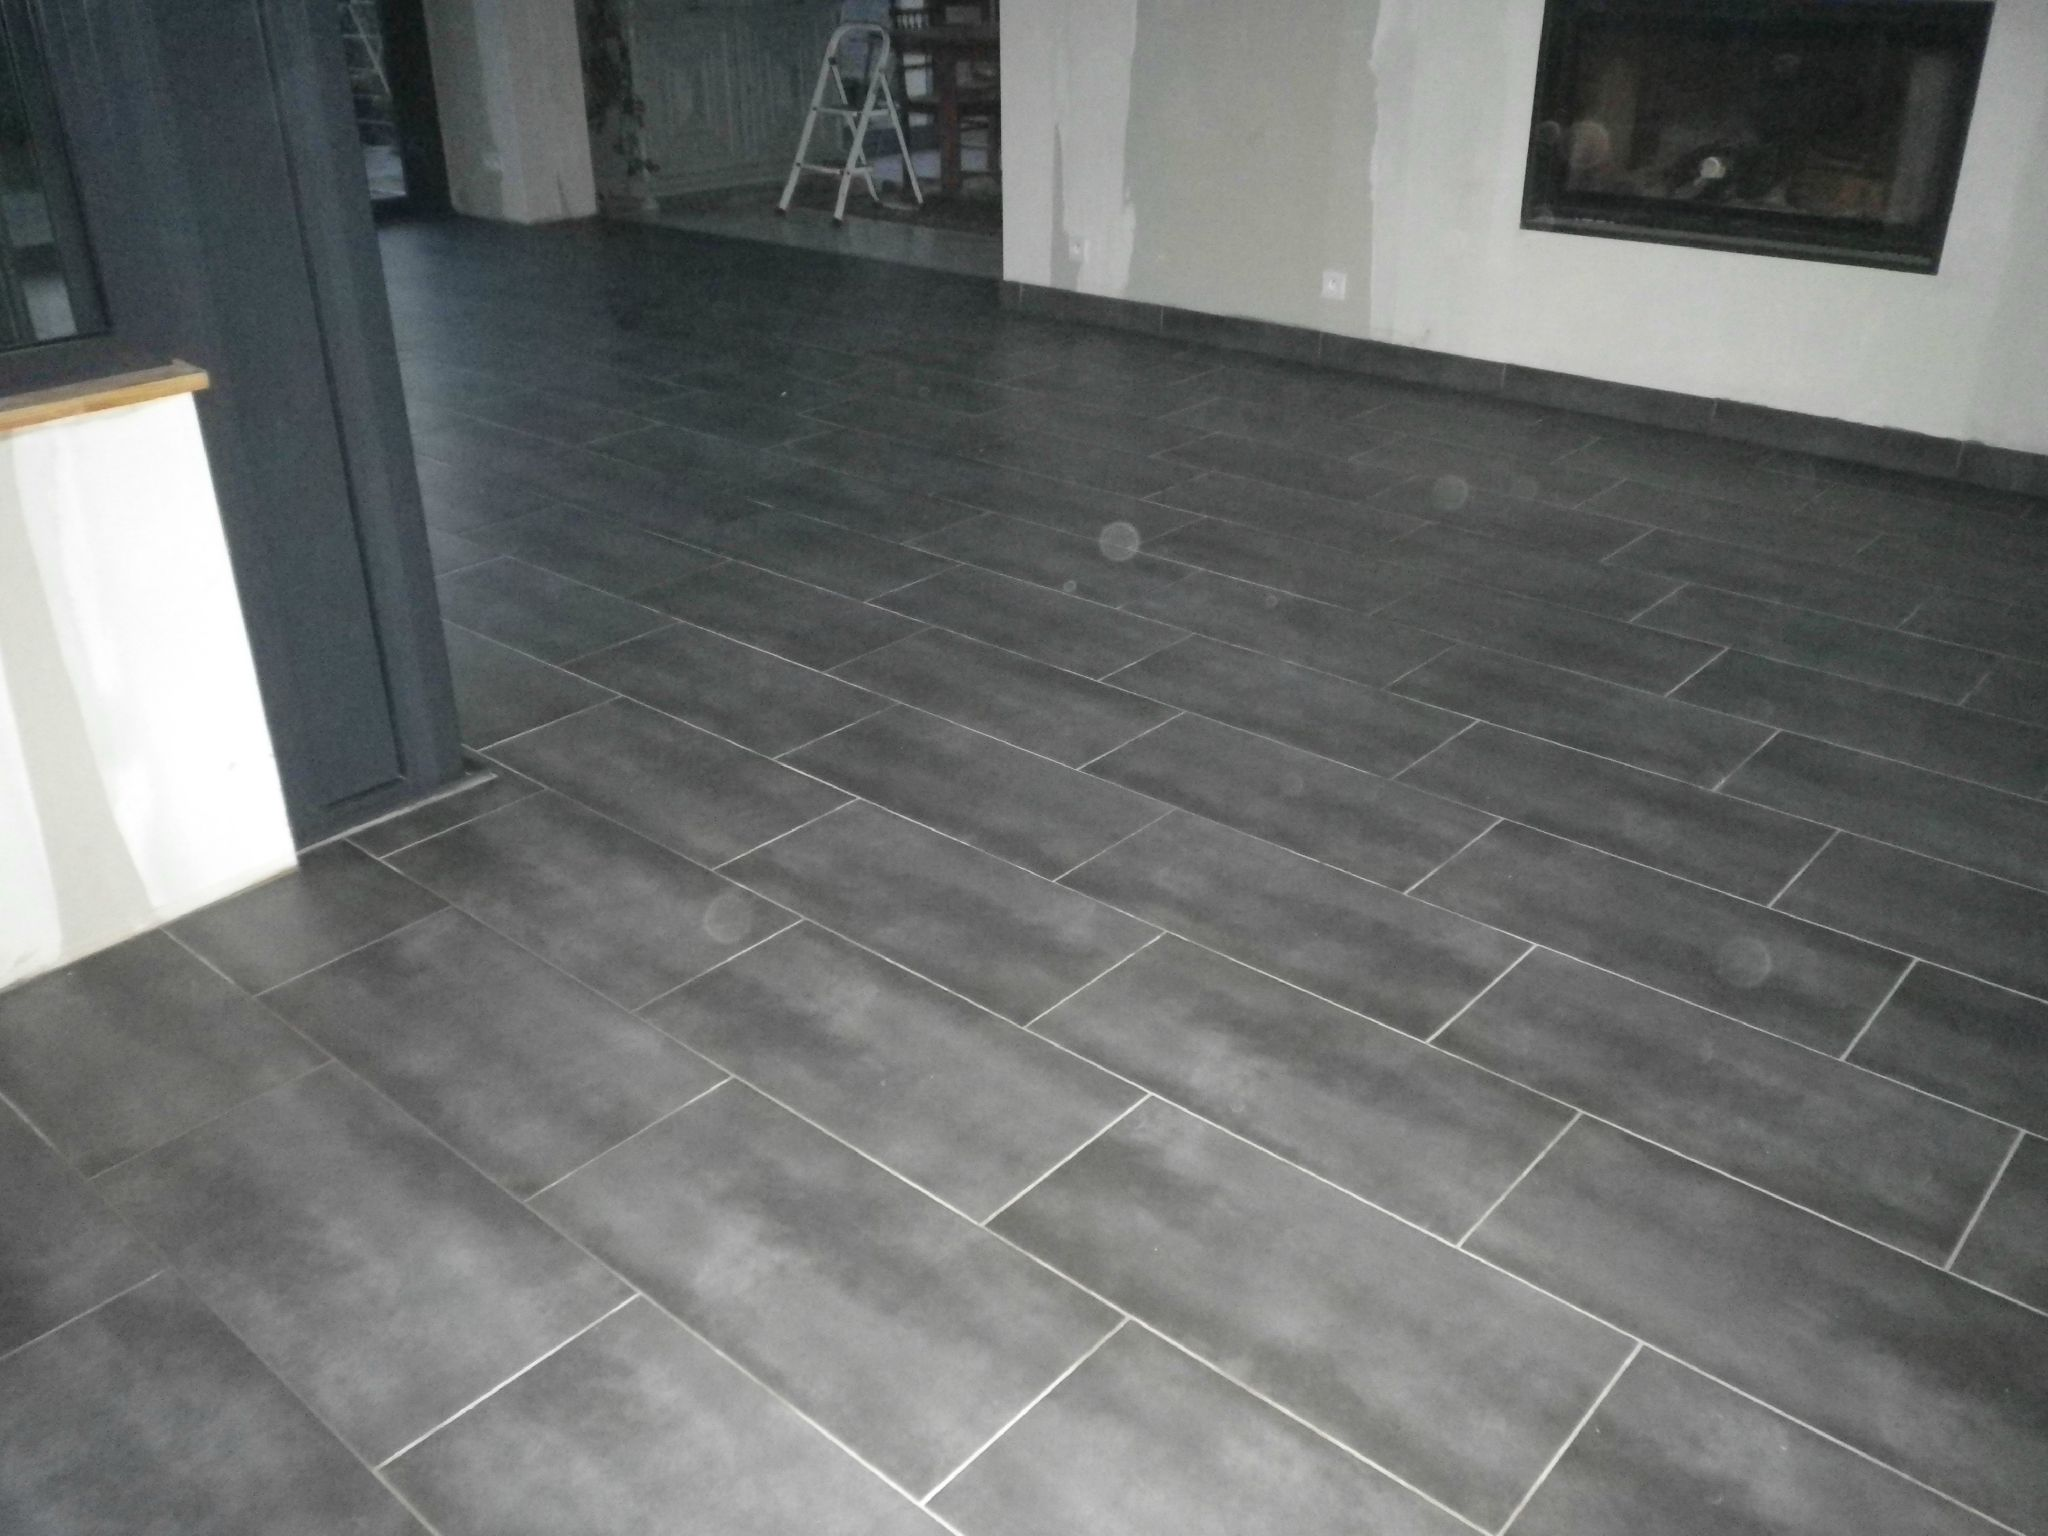 Comment poser du carrelage et surtout comment le faire bien for Carrelage rectangle